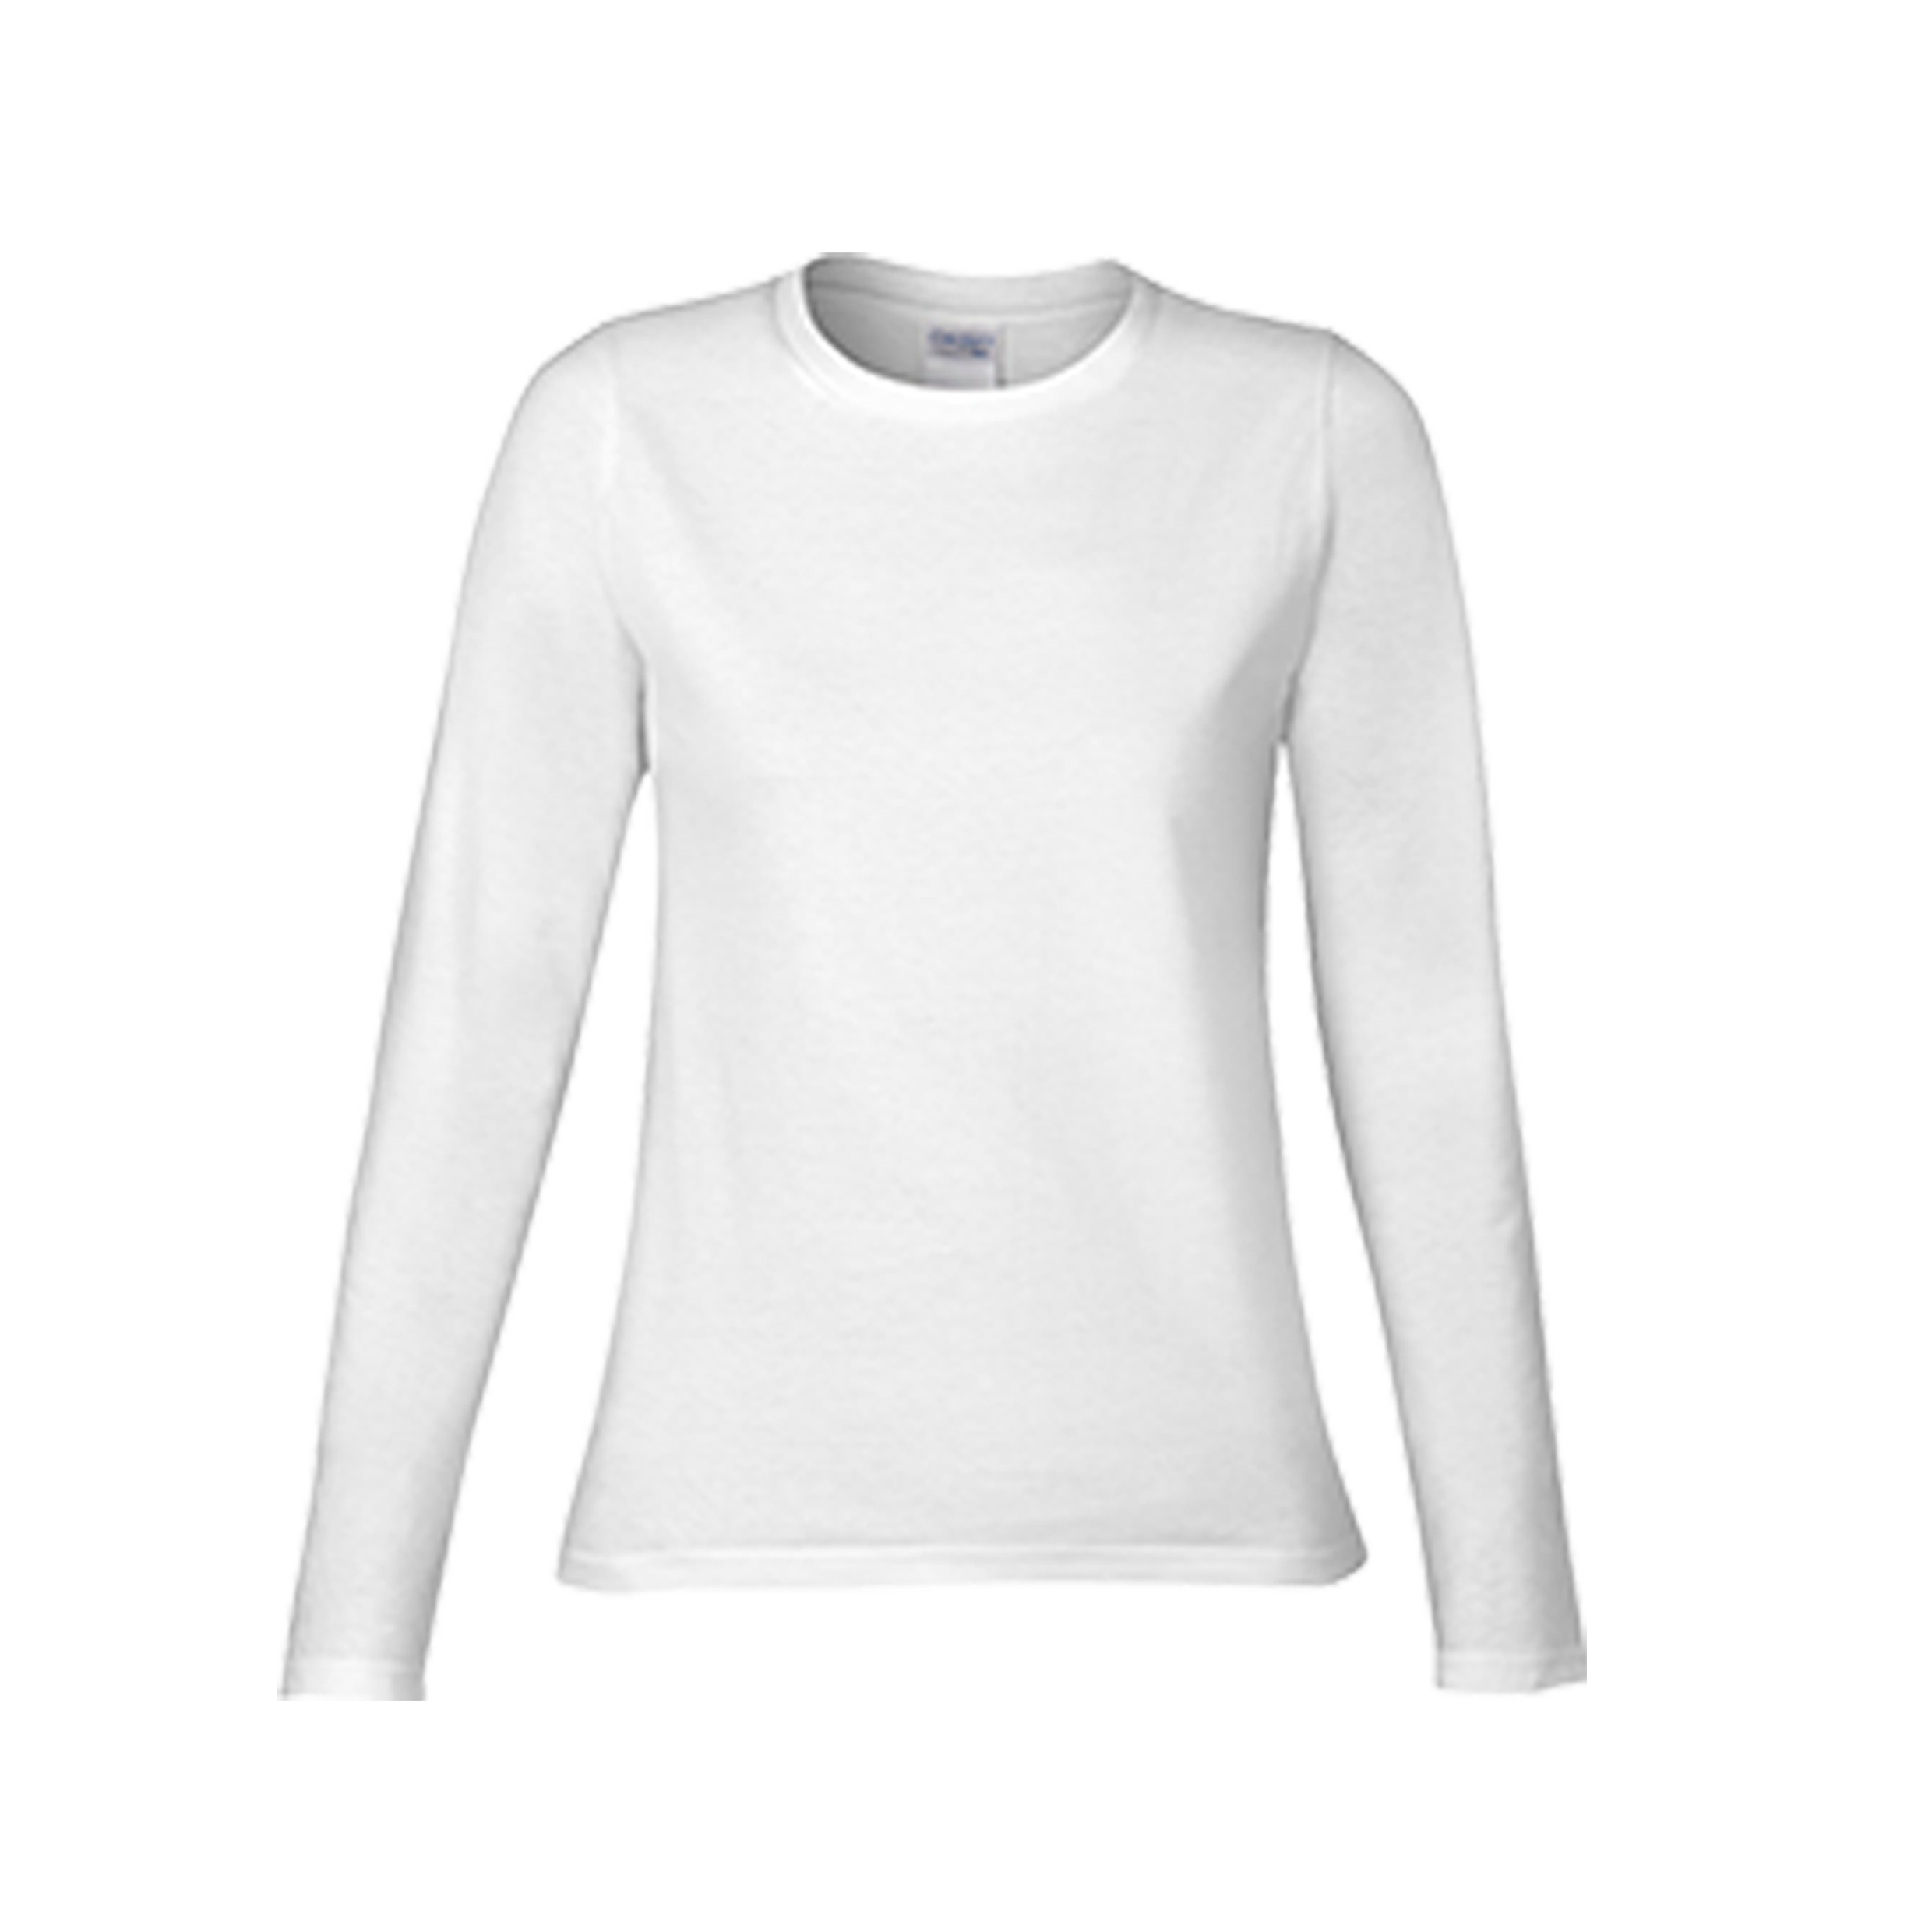 Gildan premium cotton ladies long sleeve t shirt 76400l for Women s 100 cotton long sleeve tee shirts